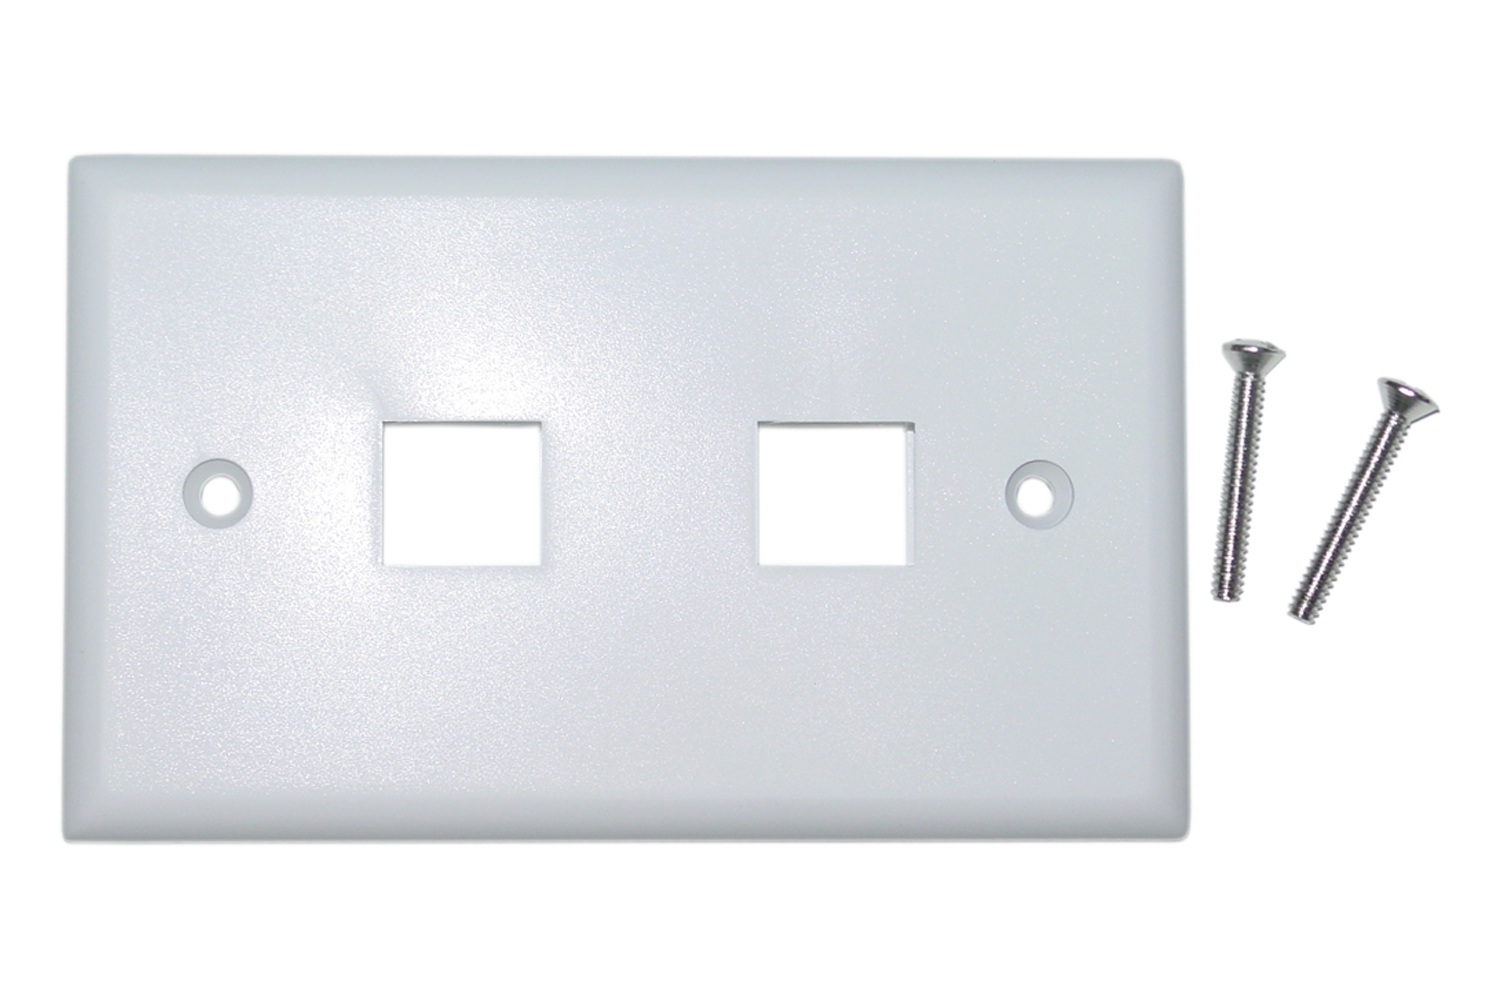 Offex Wholesale Wall Plate, 2 Hole for keystone Jack, White [Electronics]